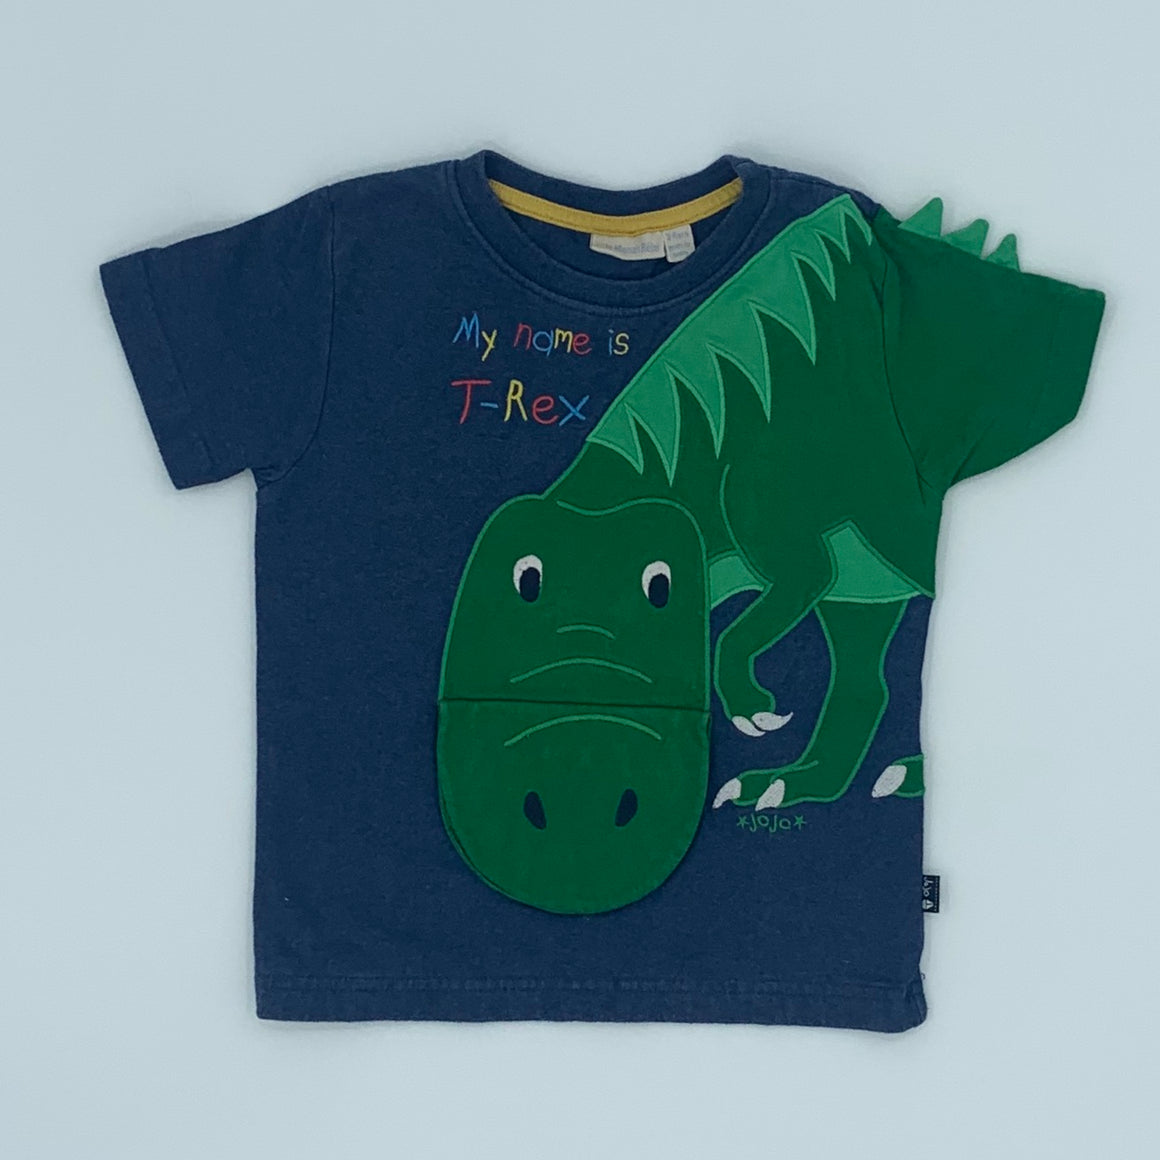 Gently Worn Jojo Maman Bebe blue t-rex t-shirt size 3-4 years